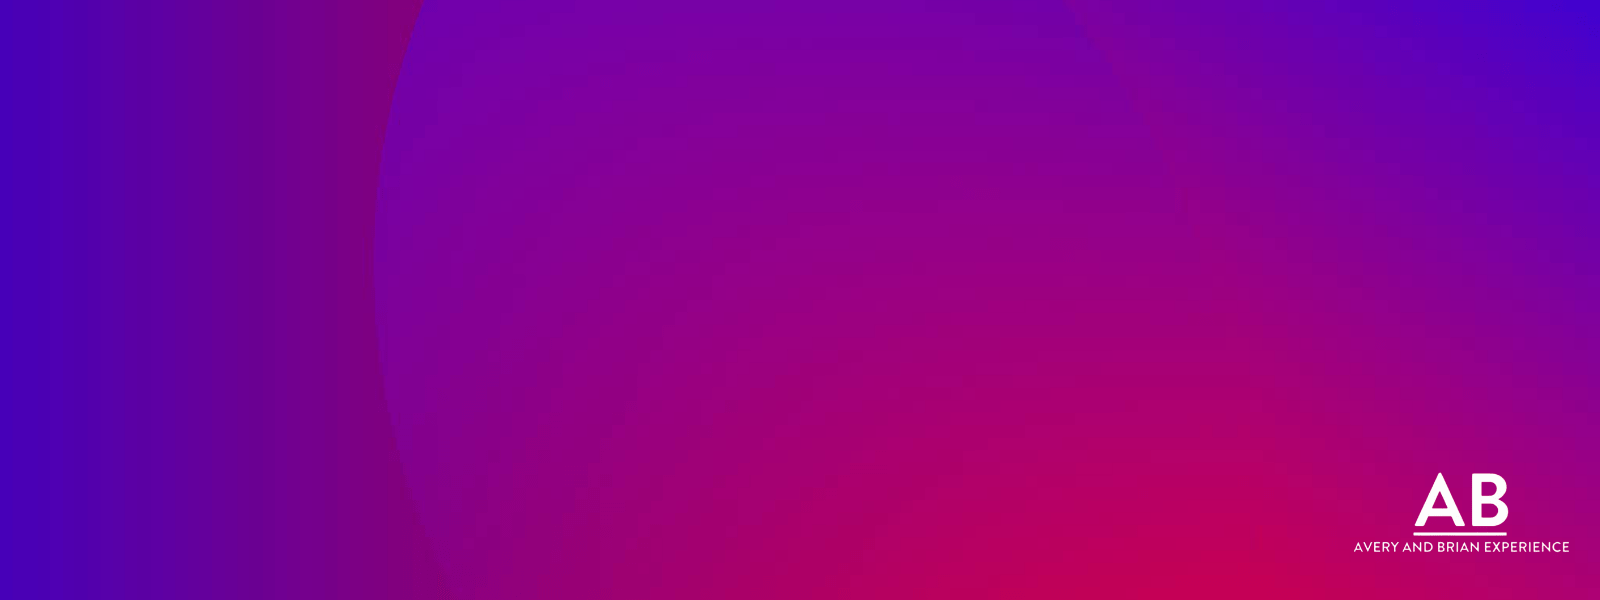 Gradient background for Avery and Brian